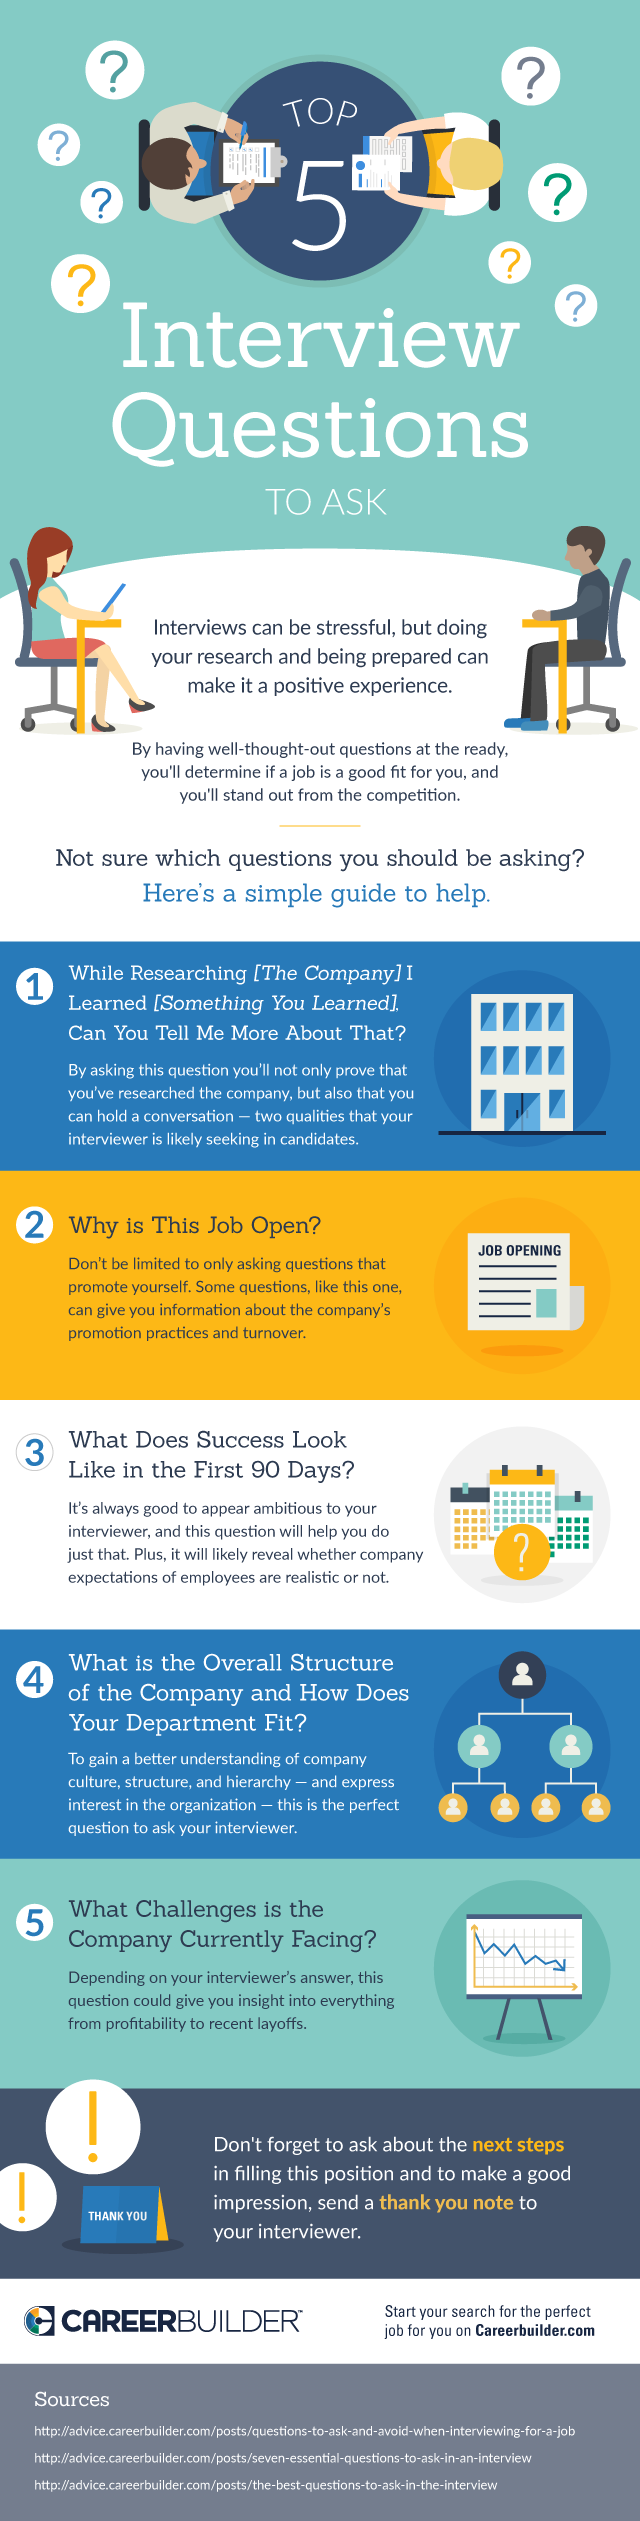 Top 5 Questions to Ask Your Interviewer - Infographic